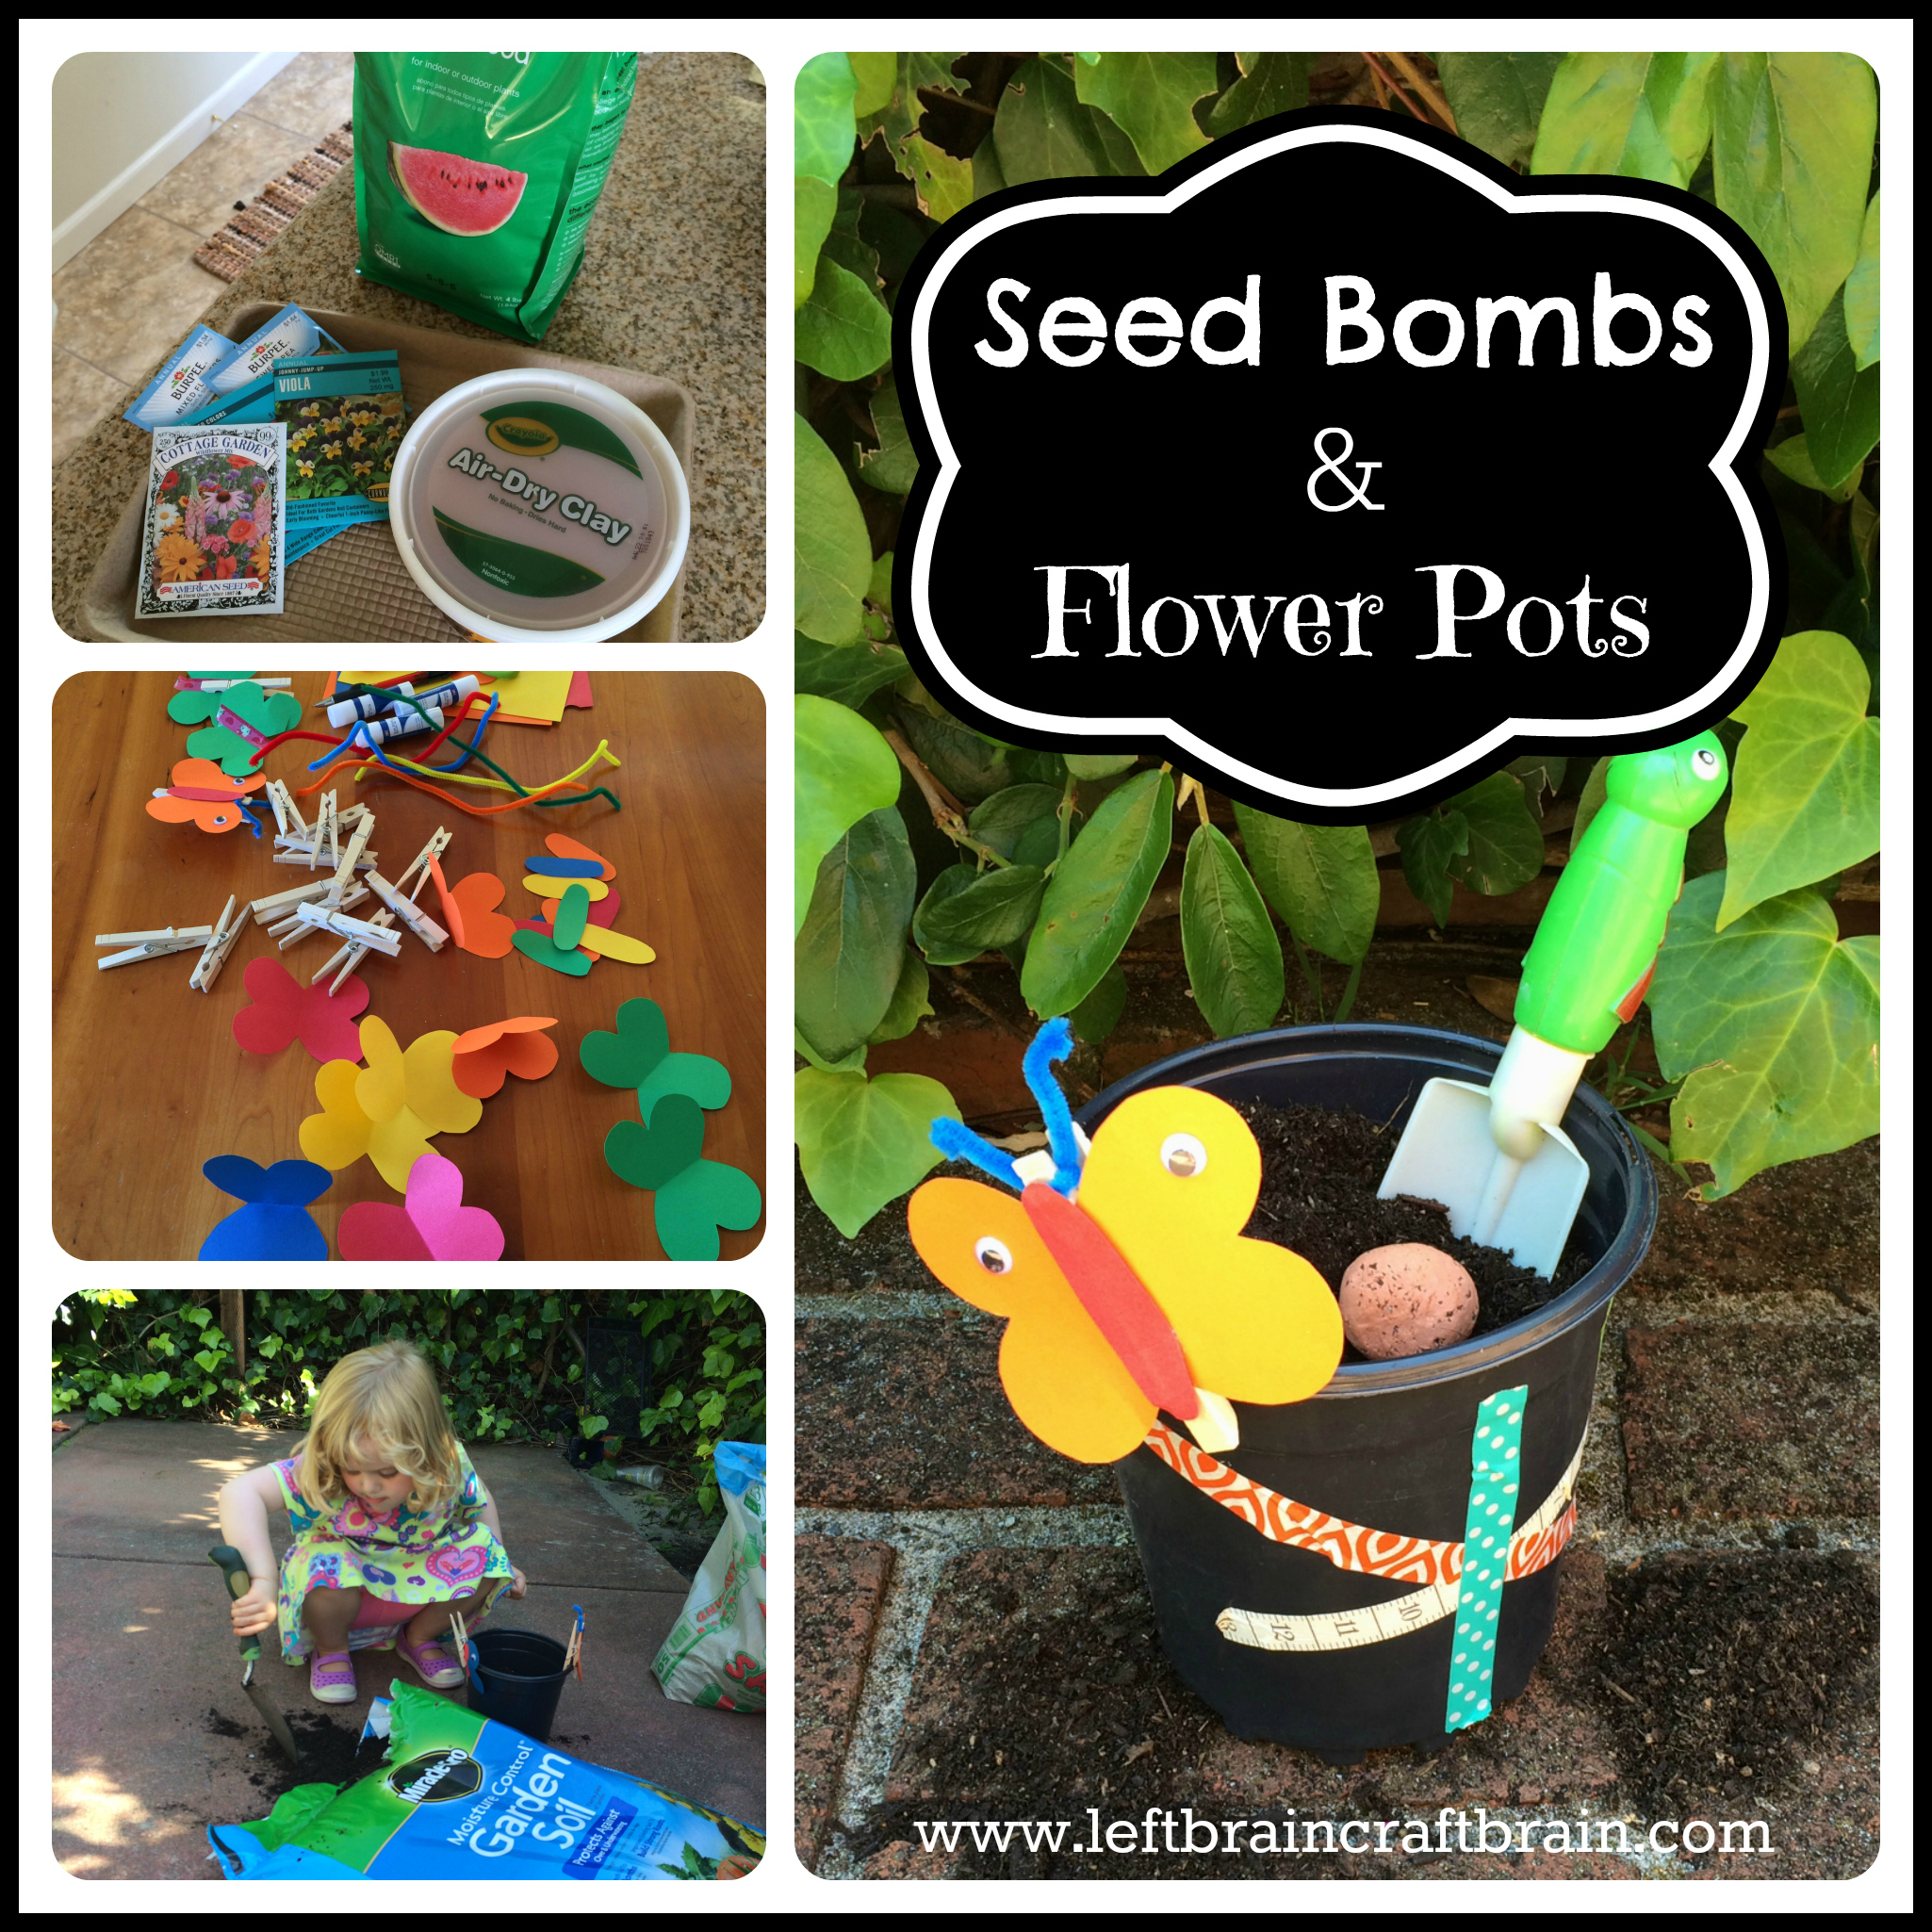 see bombs and flower pots cover